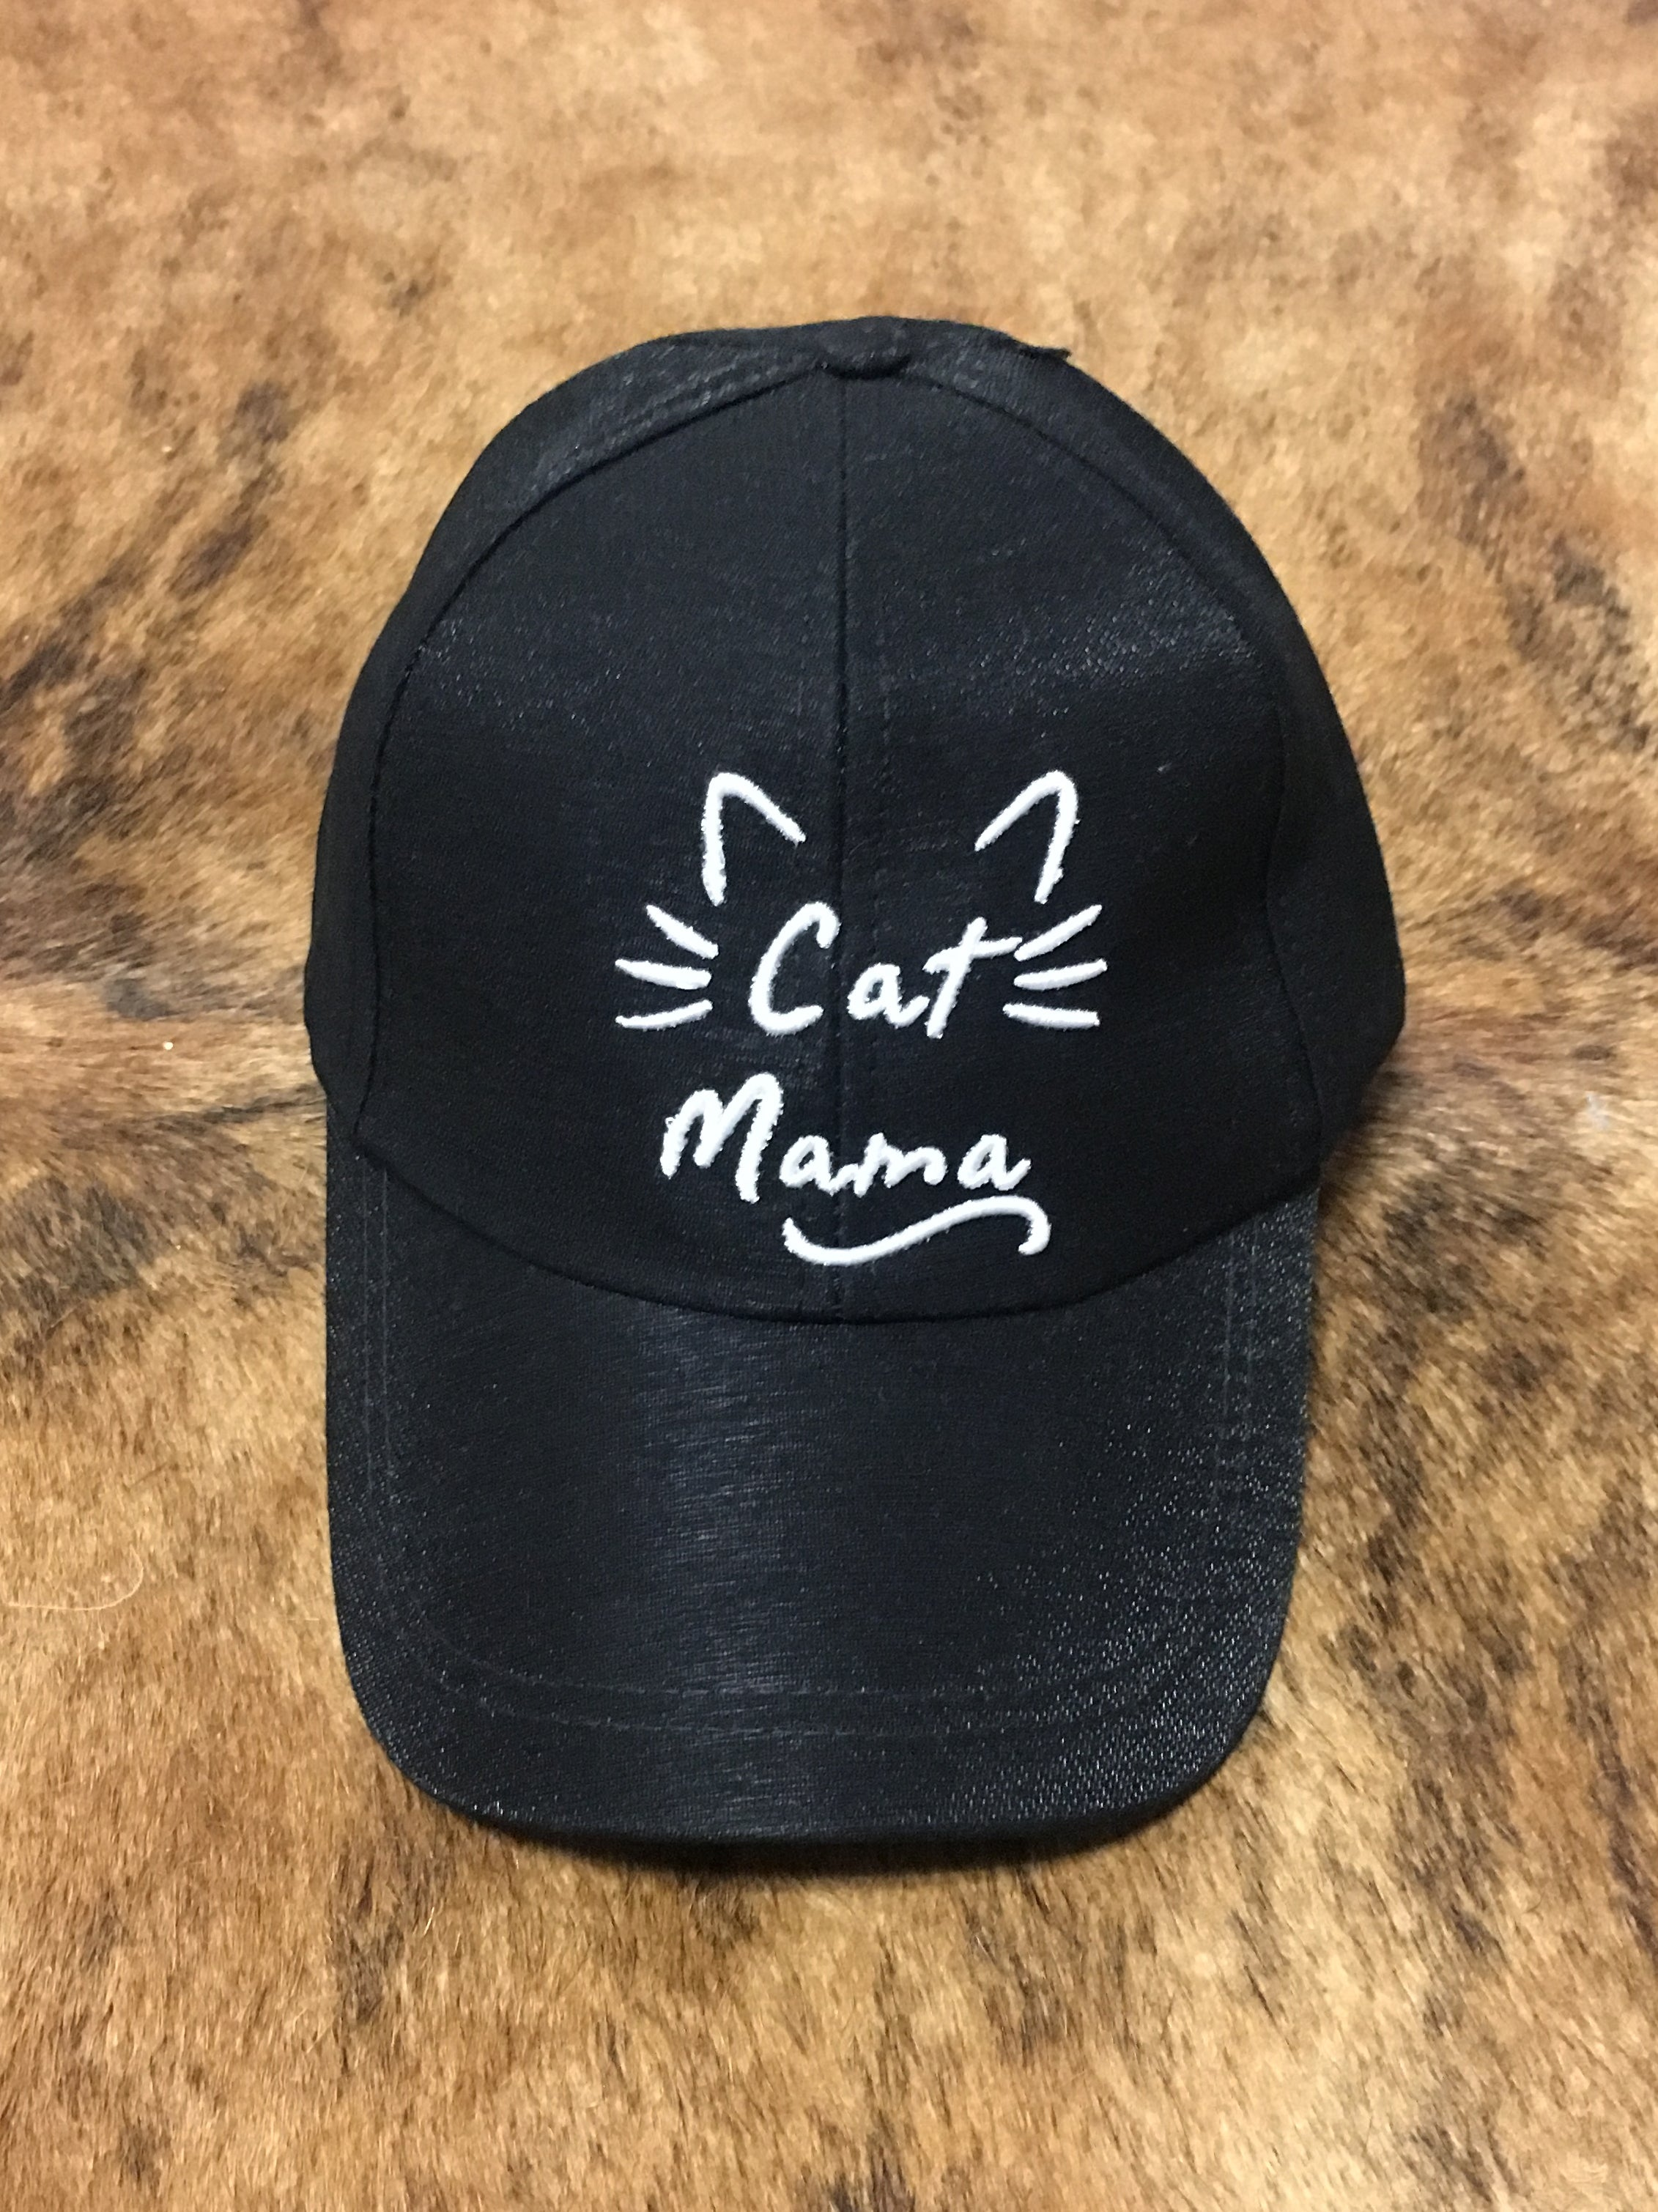 Cat Mama Cap - Black | Feathers n Fringe Boutique